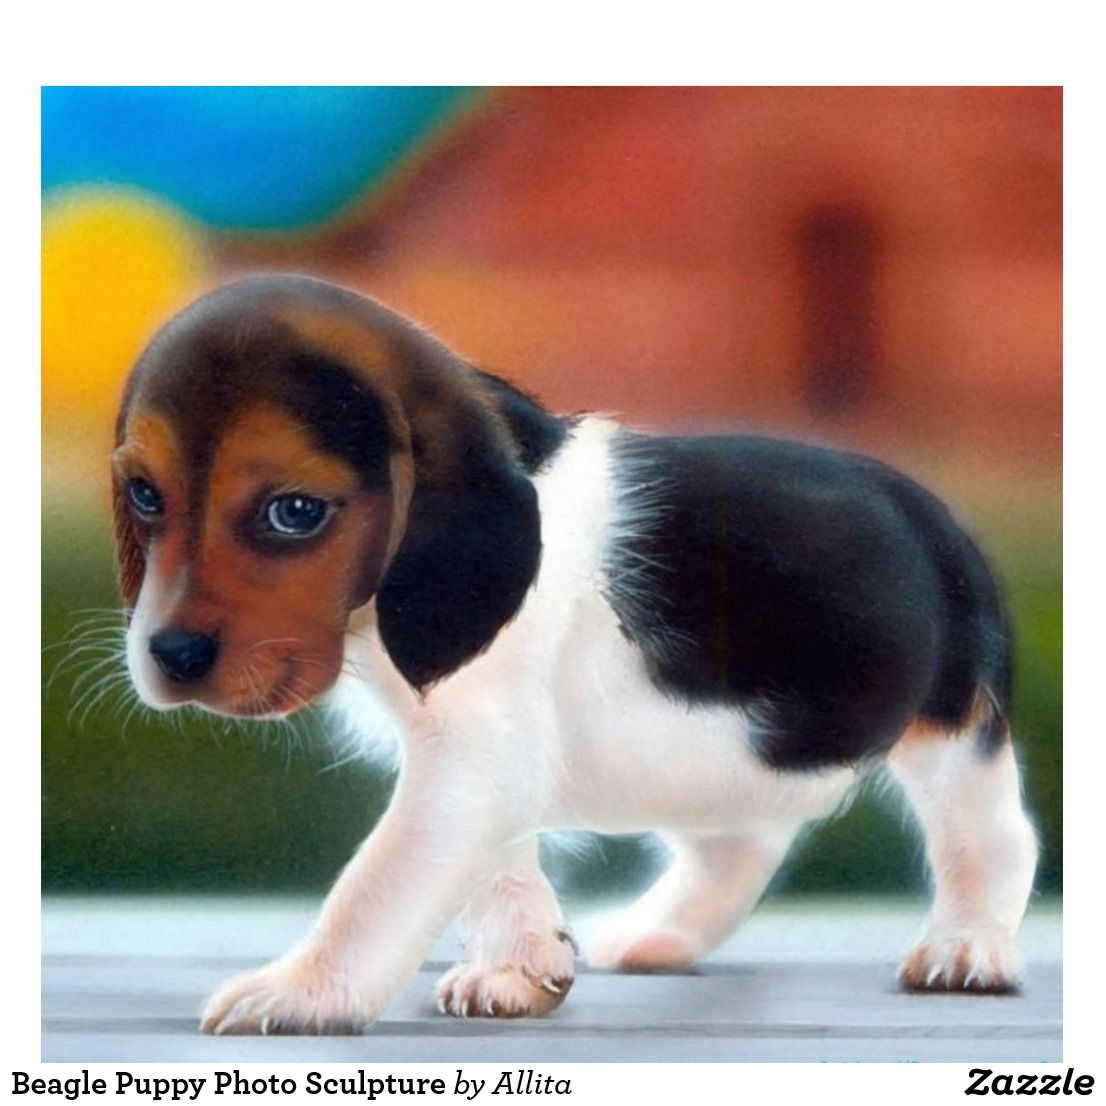 Beagle Puppy Photo Sculpture Zazzle Com In 2020 Cute Animal Pictures Cute Animals Cute Puppy Wallpaper